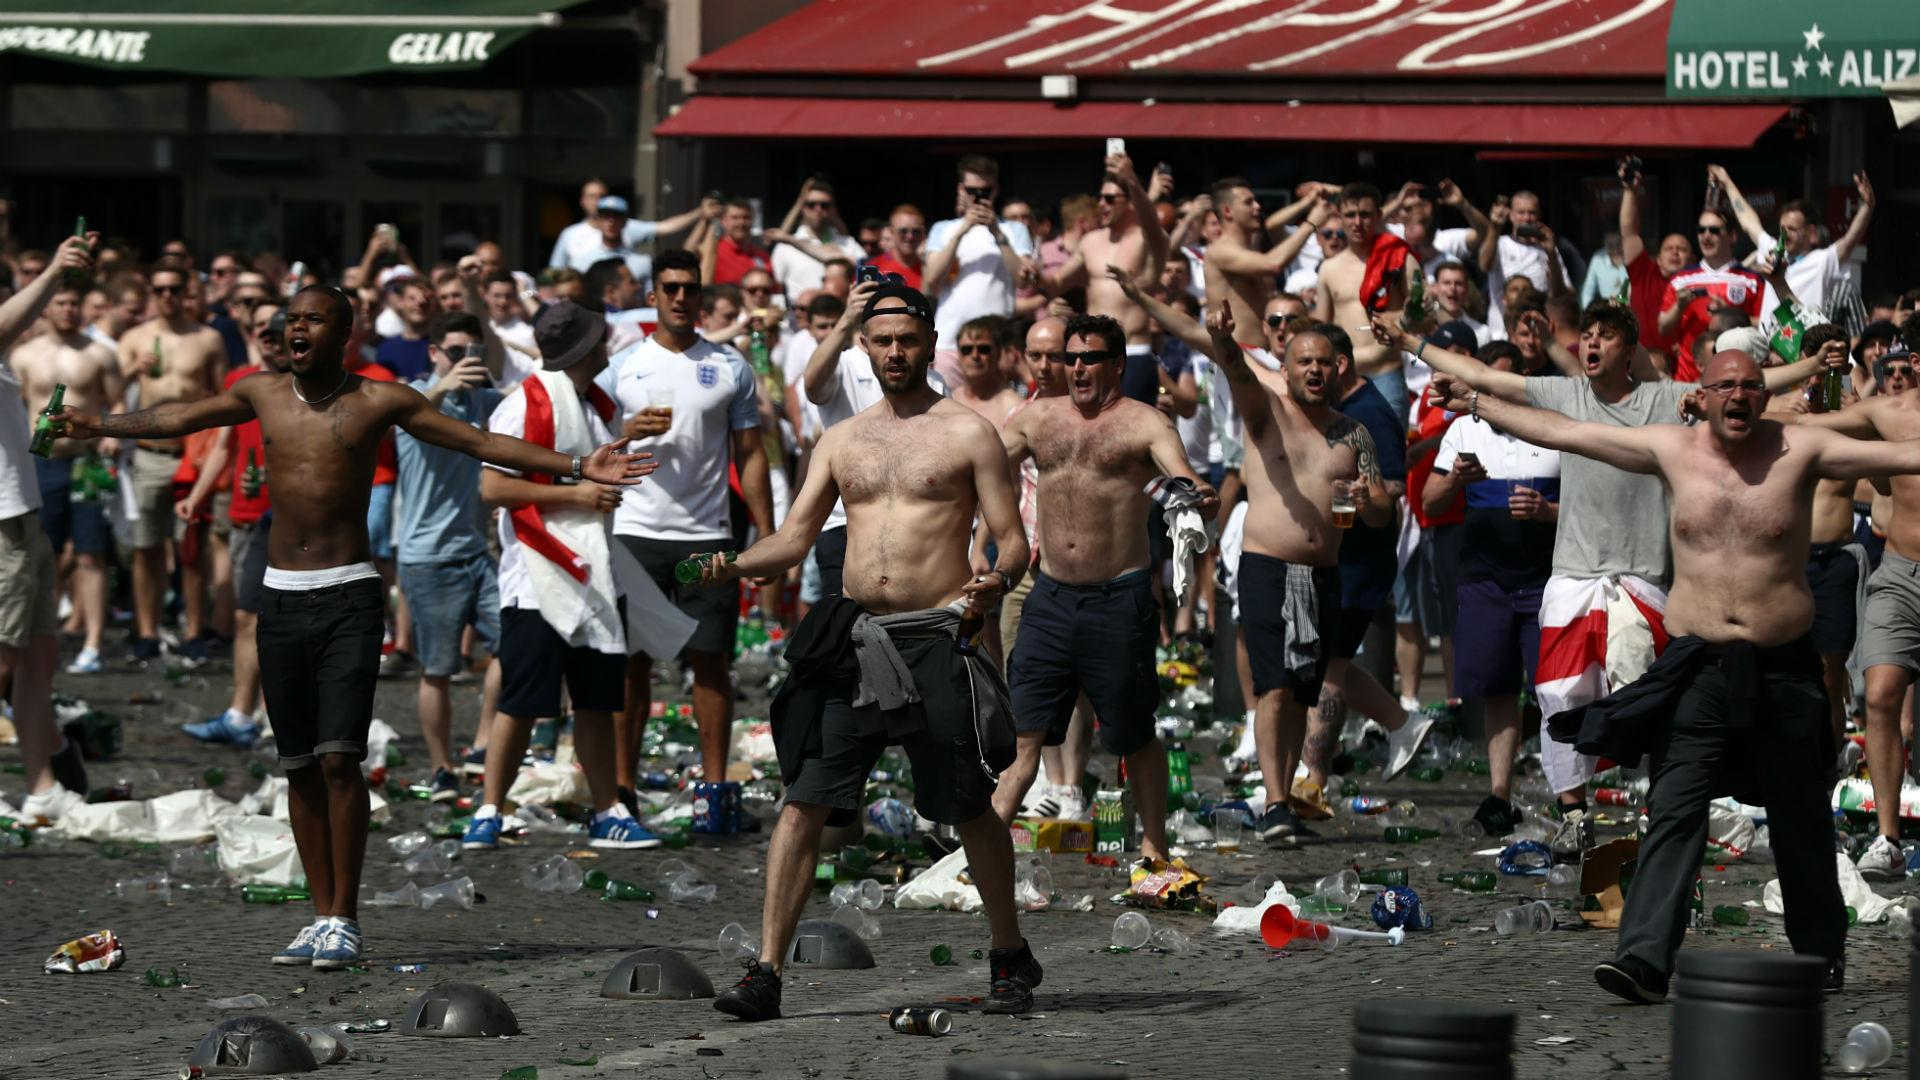 violence among football fans essay Essays related to violence in soccer 1 hostility leading to fan violence will never overthrow football american sport fans thrive on violence.